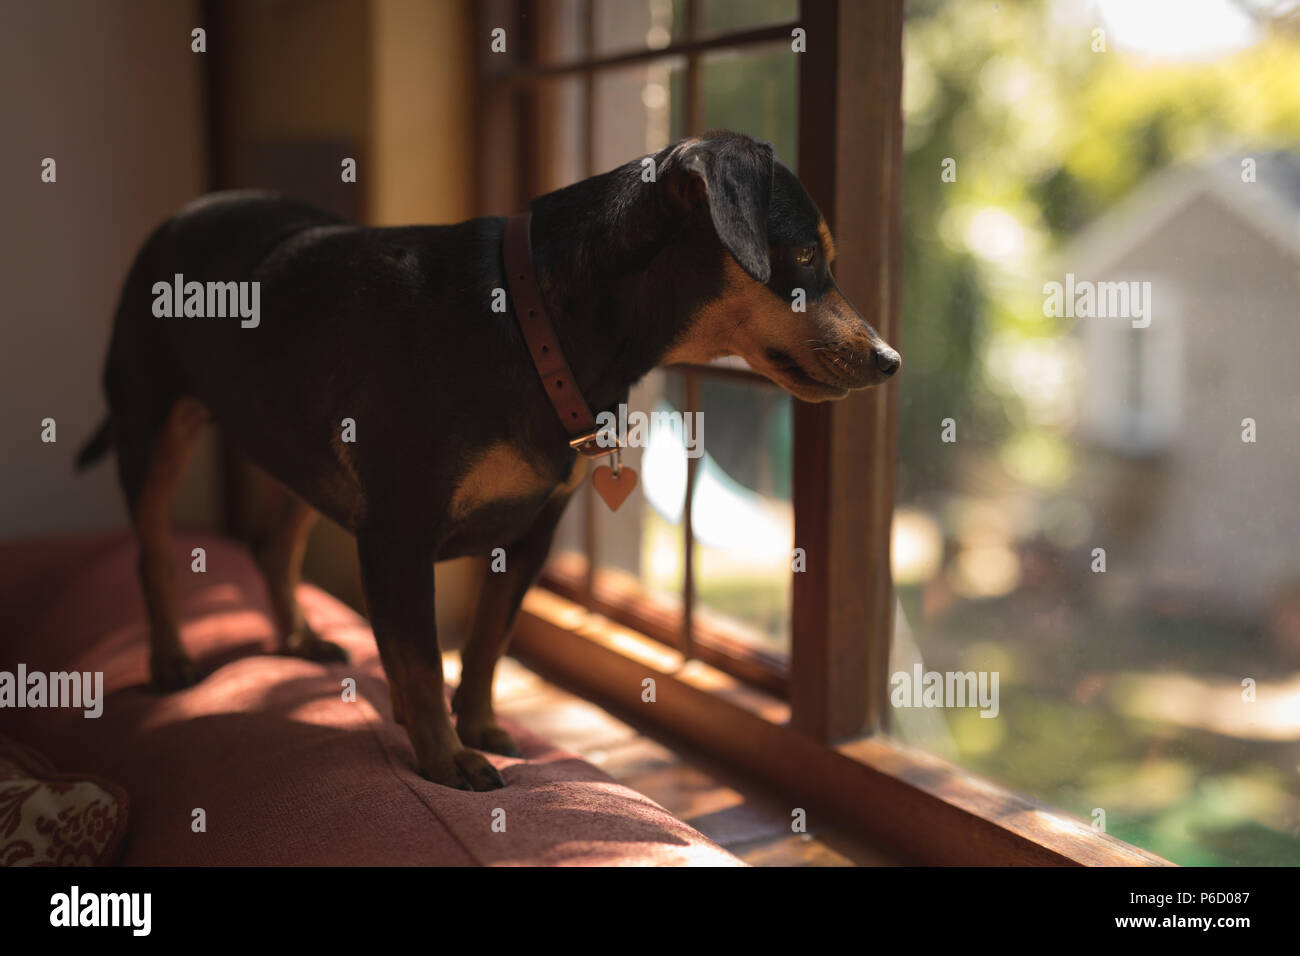 Dog standing on sofa looking out of the window - Stock Image